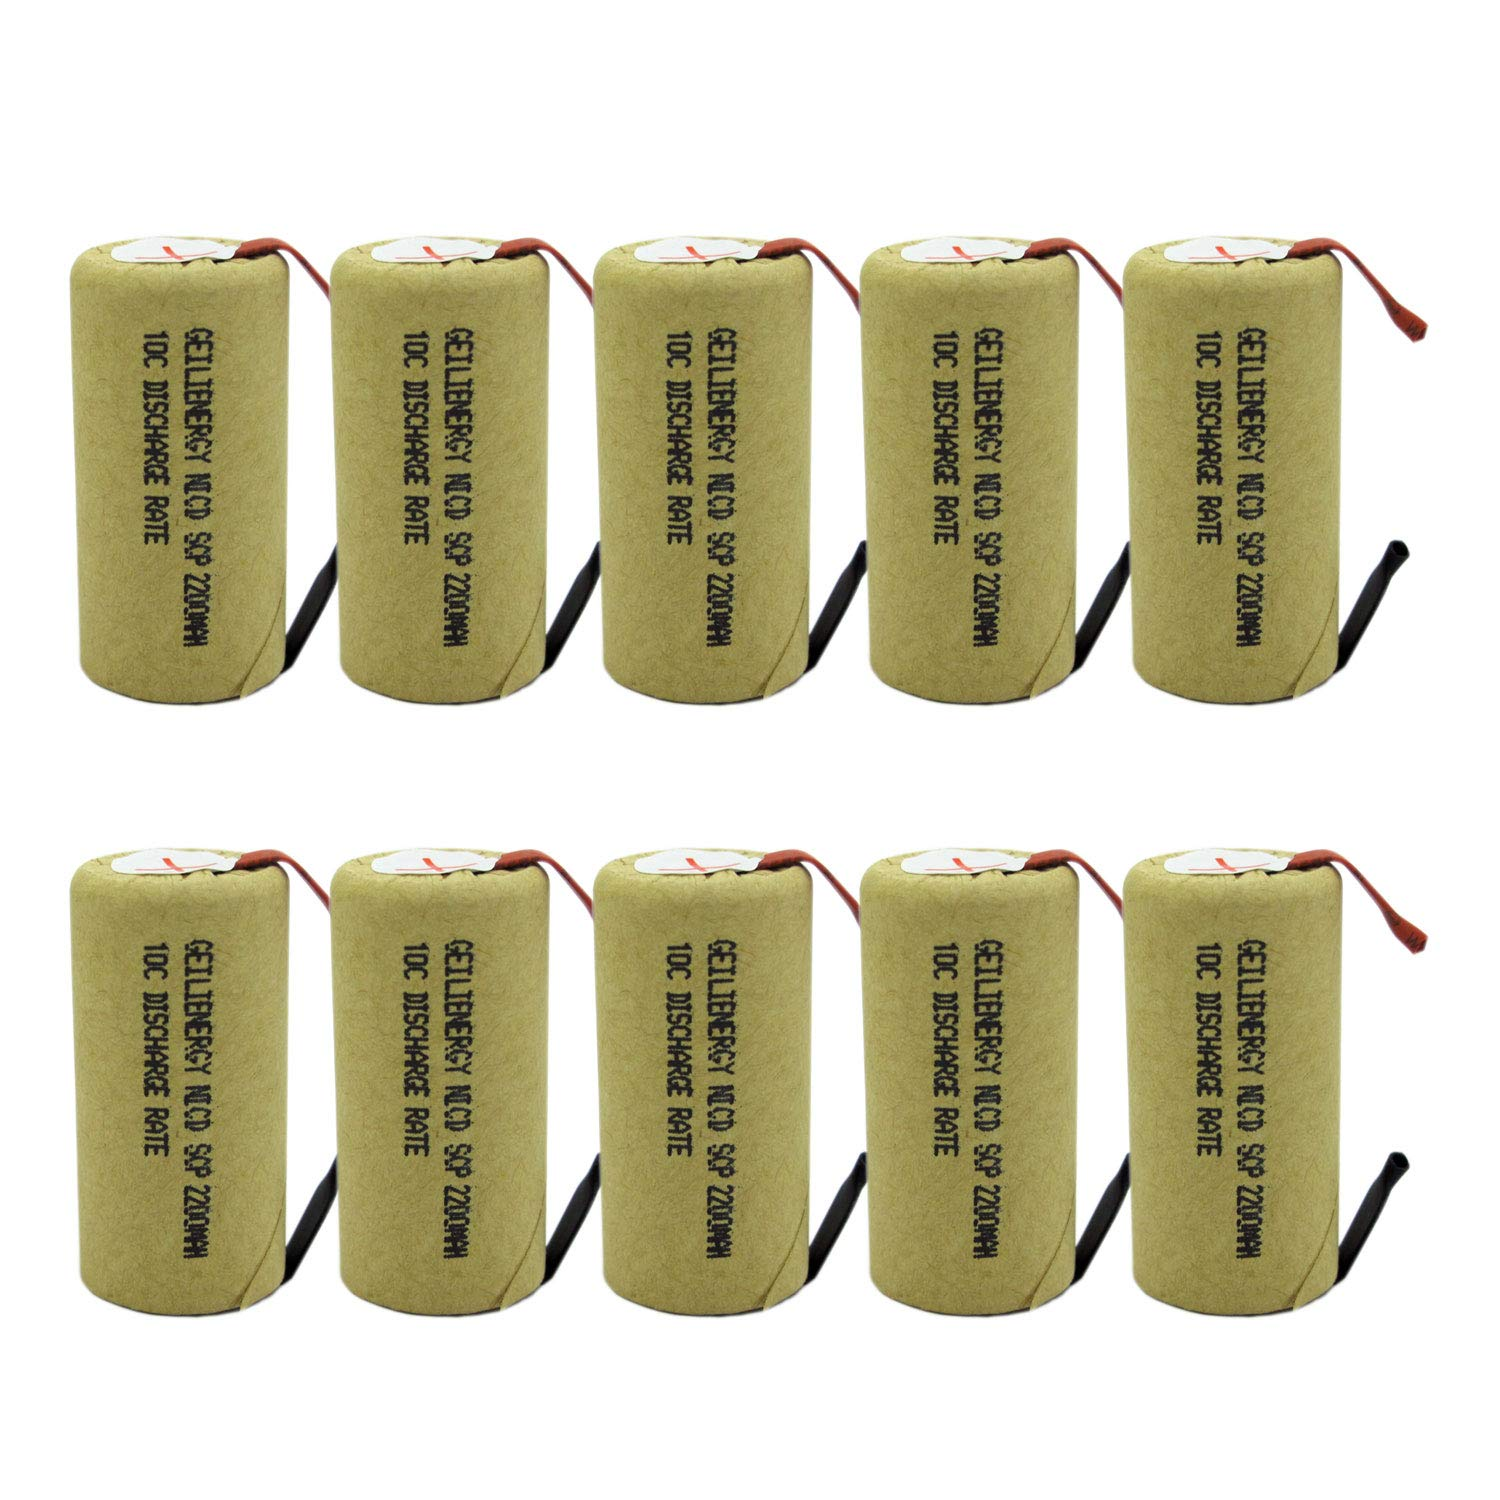 GEILIENERGY 2200mAh Sub C NiCd Battery 10C Discharge Rate for Power Tools, 1.2V Flat Top Rechargeable Sub-C Cell Batteries with Tabs(Pack of 10) by GEILIENERGY